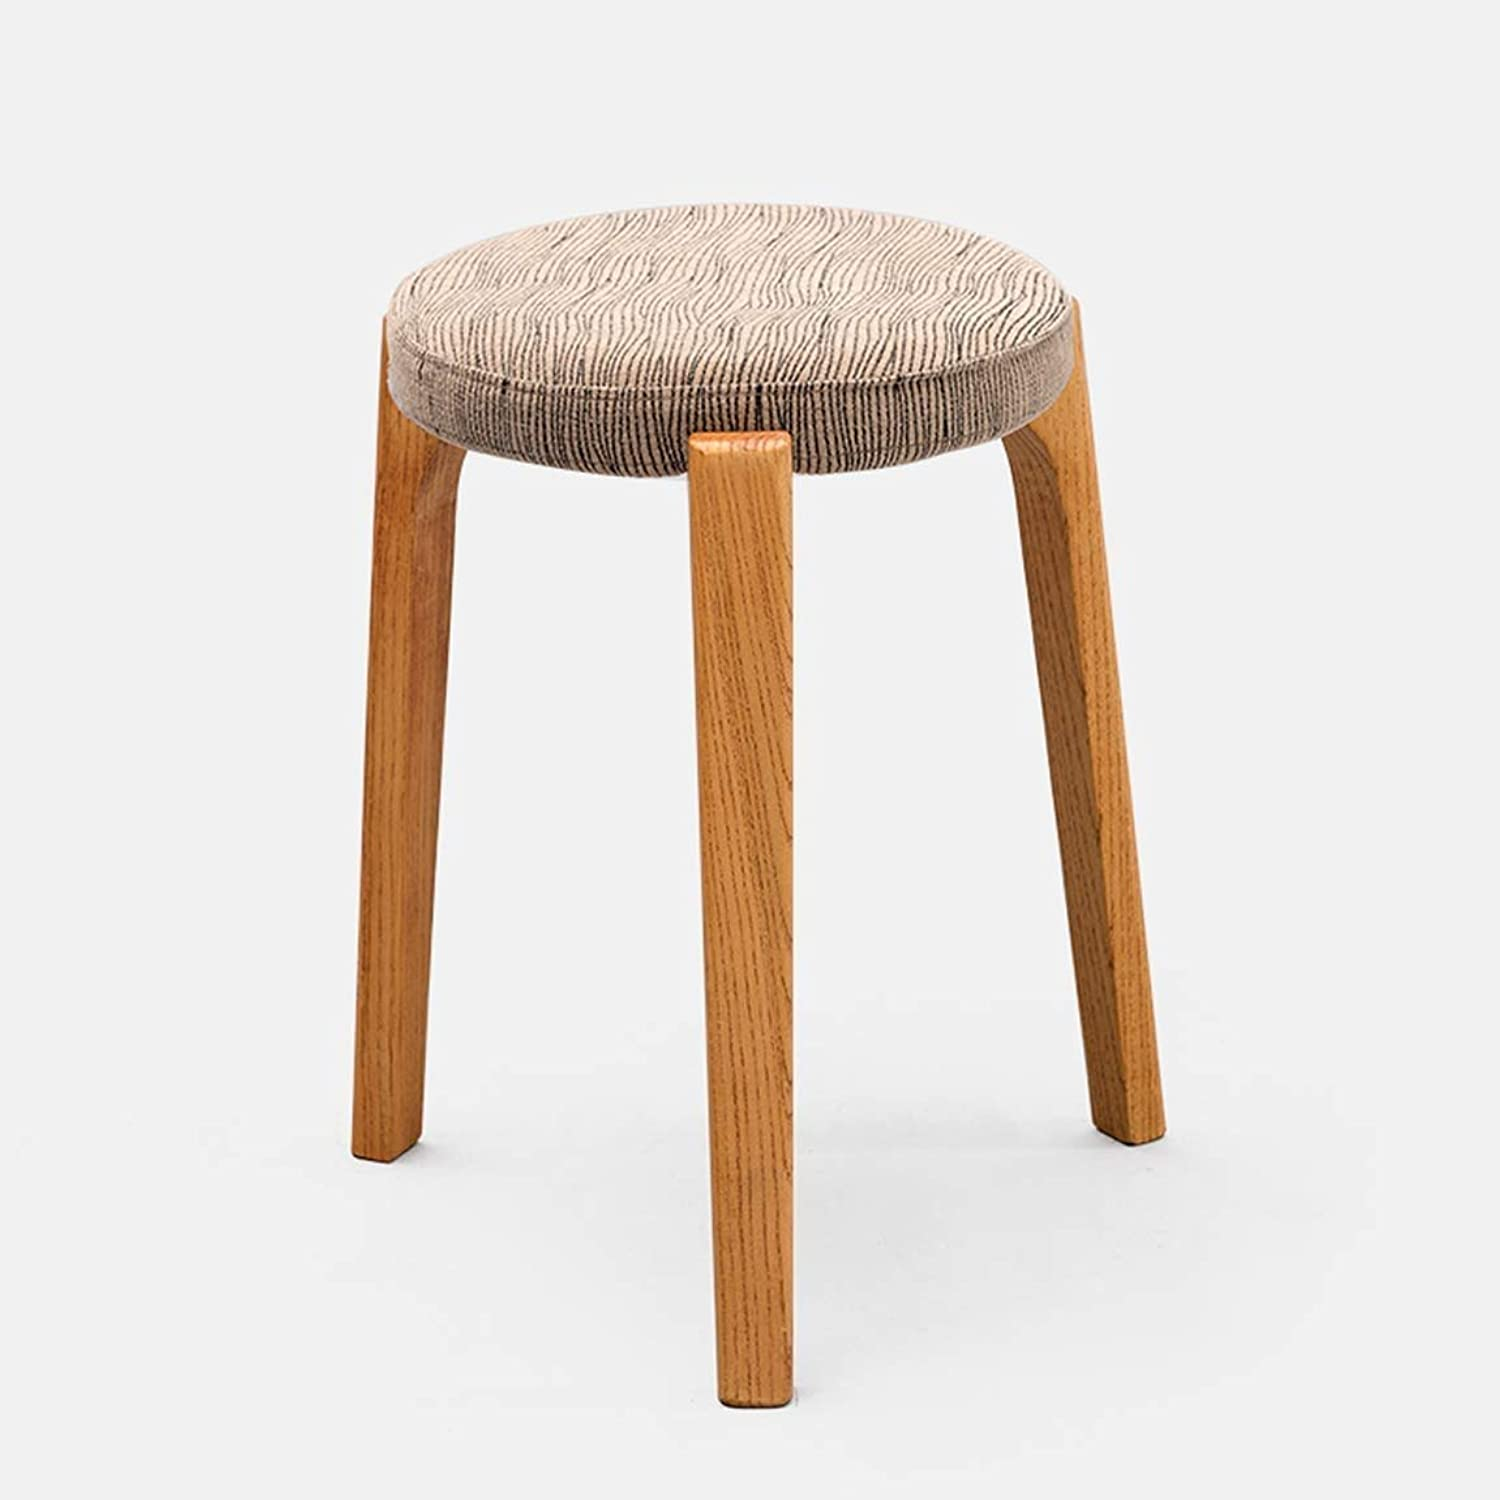 Creative Small Stool Solid Wooden Dining Stool, Square Stool, Dressing Stool, Simple Fashionable Dressing Stool, Bench, Household Stool 9 GMING (Size   31  45cm)